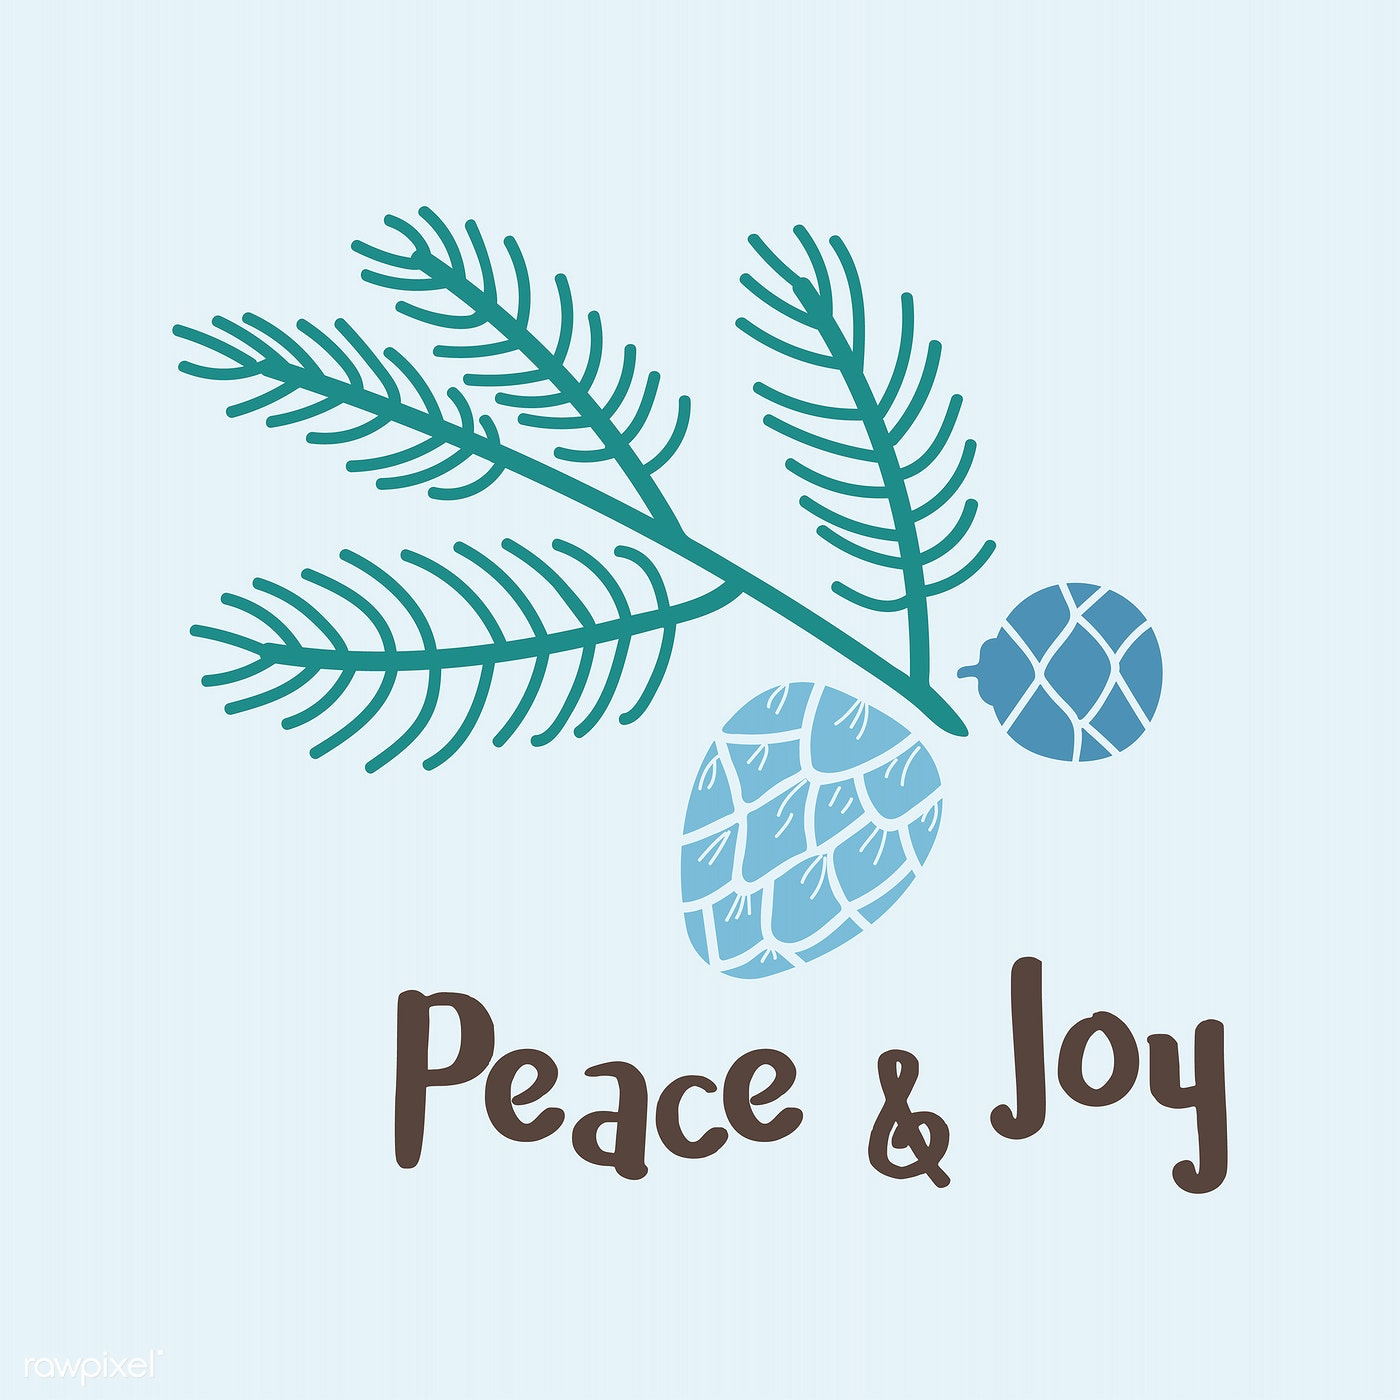 Peace & Joy greeting badge vector